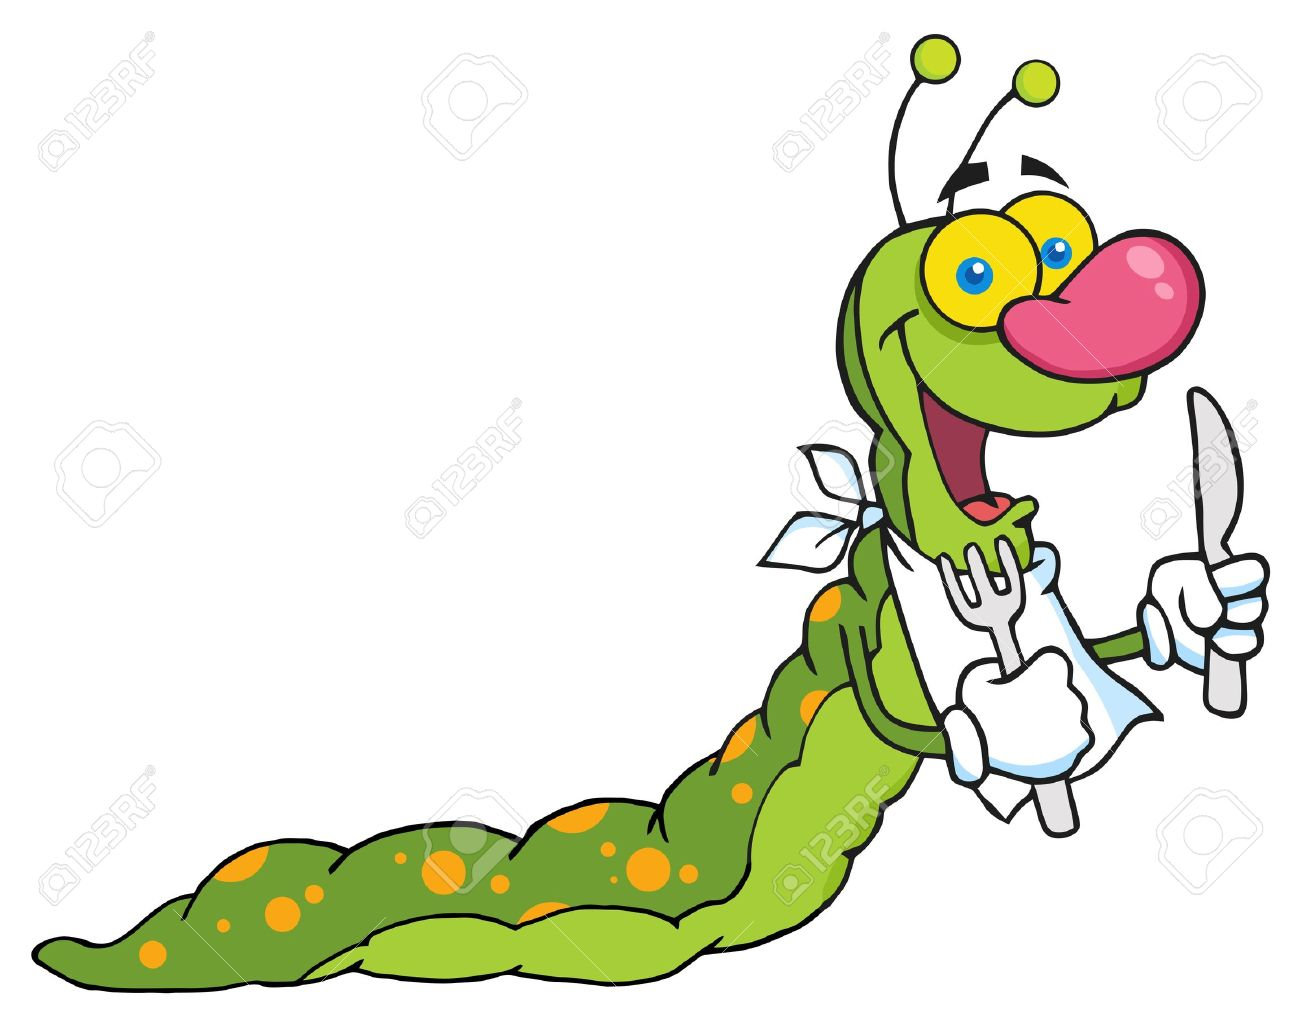 maggot images u0026 stock pictures royalty free maggot photos and